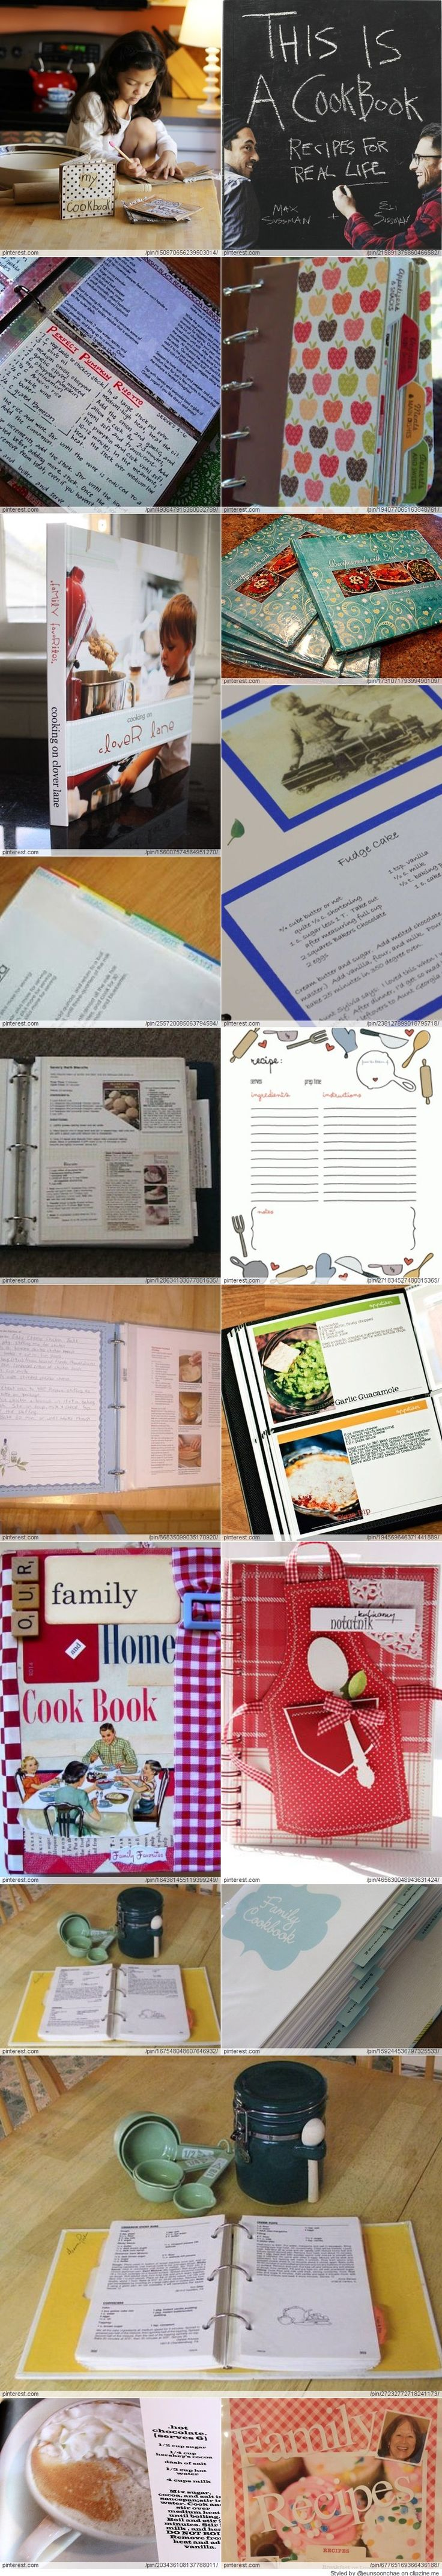 20 best cookbook images on pinterest recipe books hands and kitchens